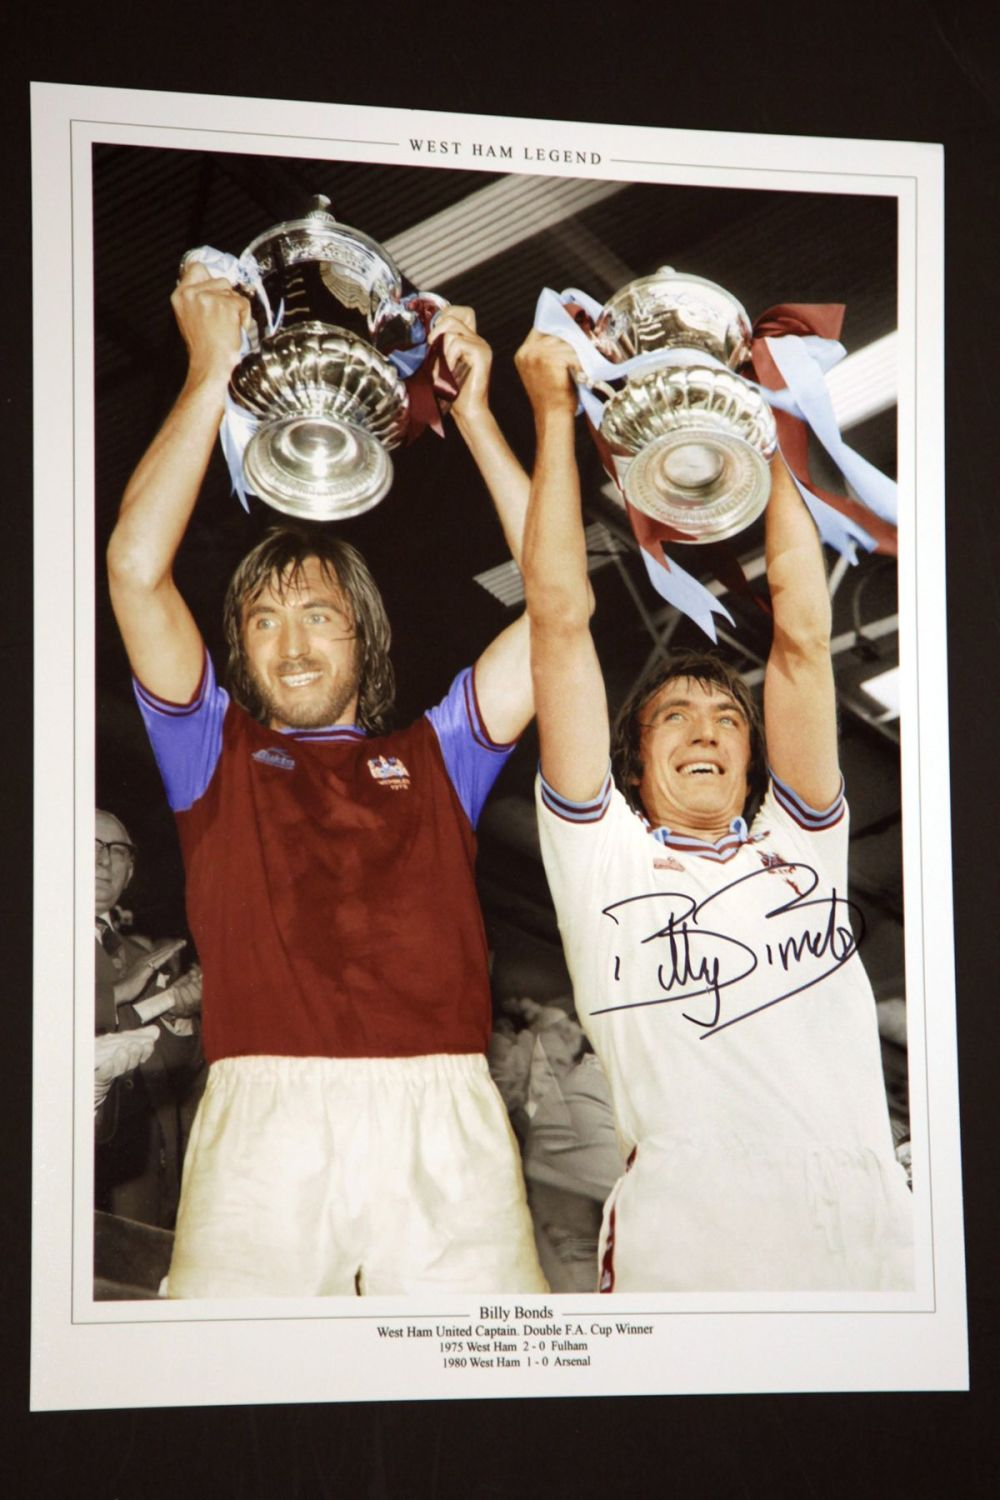 Billy Bonds Signed West Ham United 12x16 Football Photograph